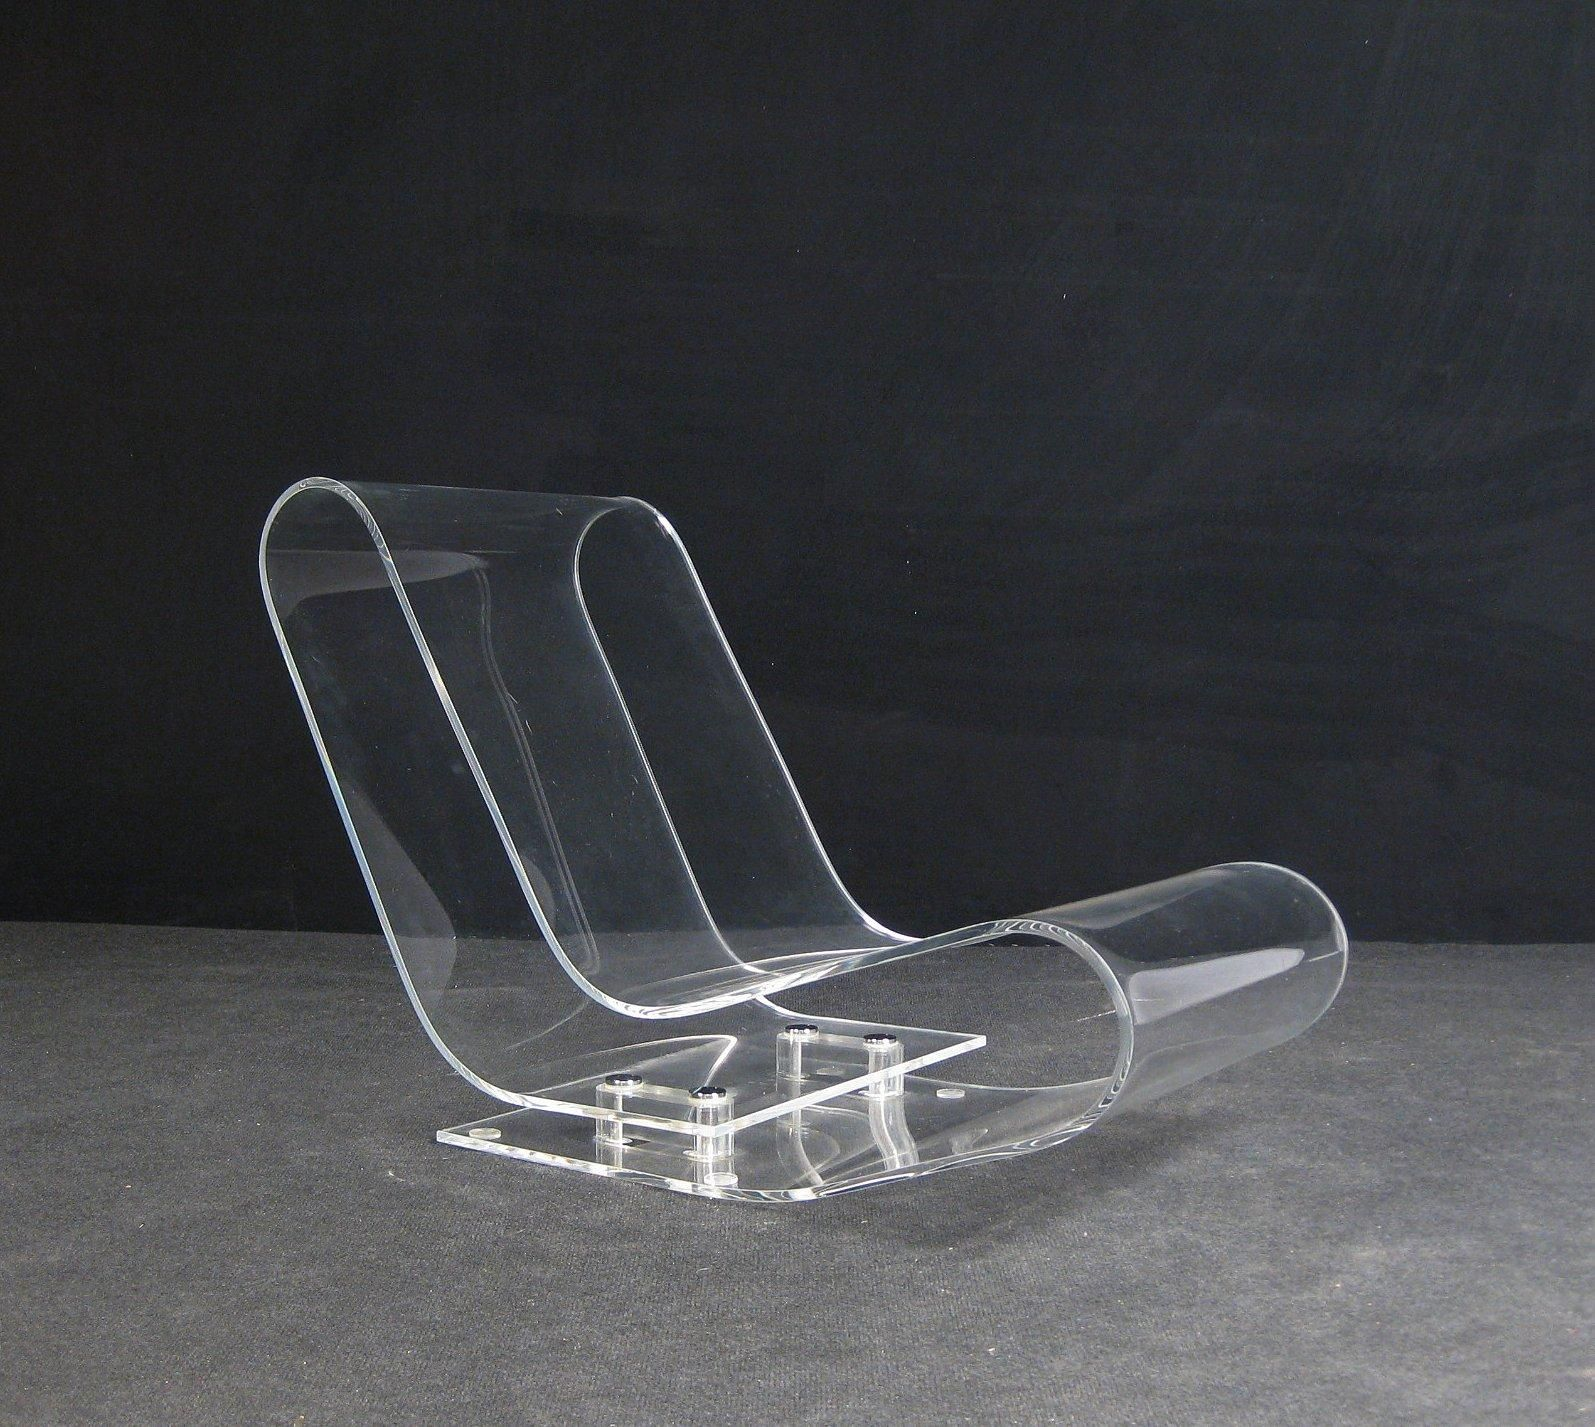 Kartell Düsseldorf areaneo maarten severen lounge chair lcp for kartell lauritz